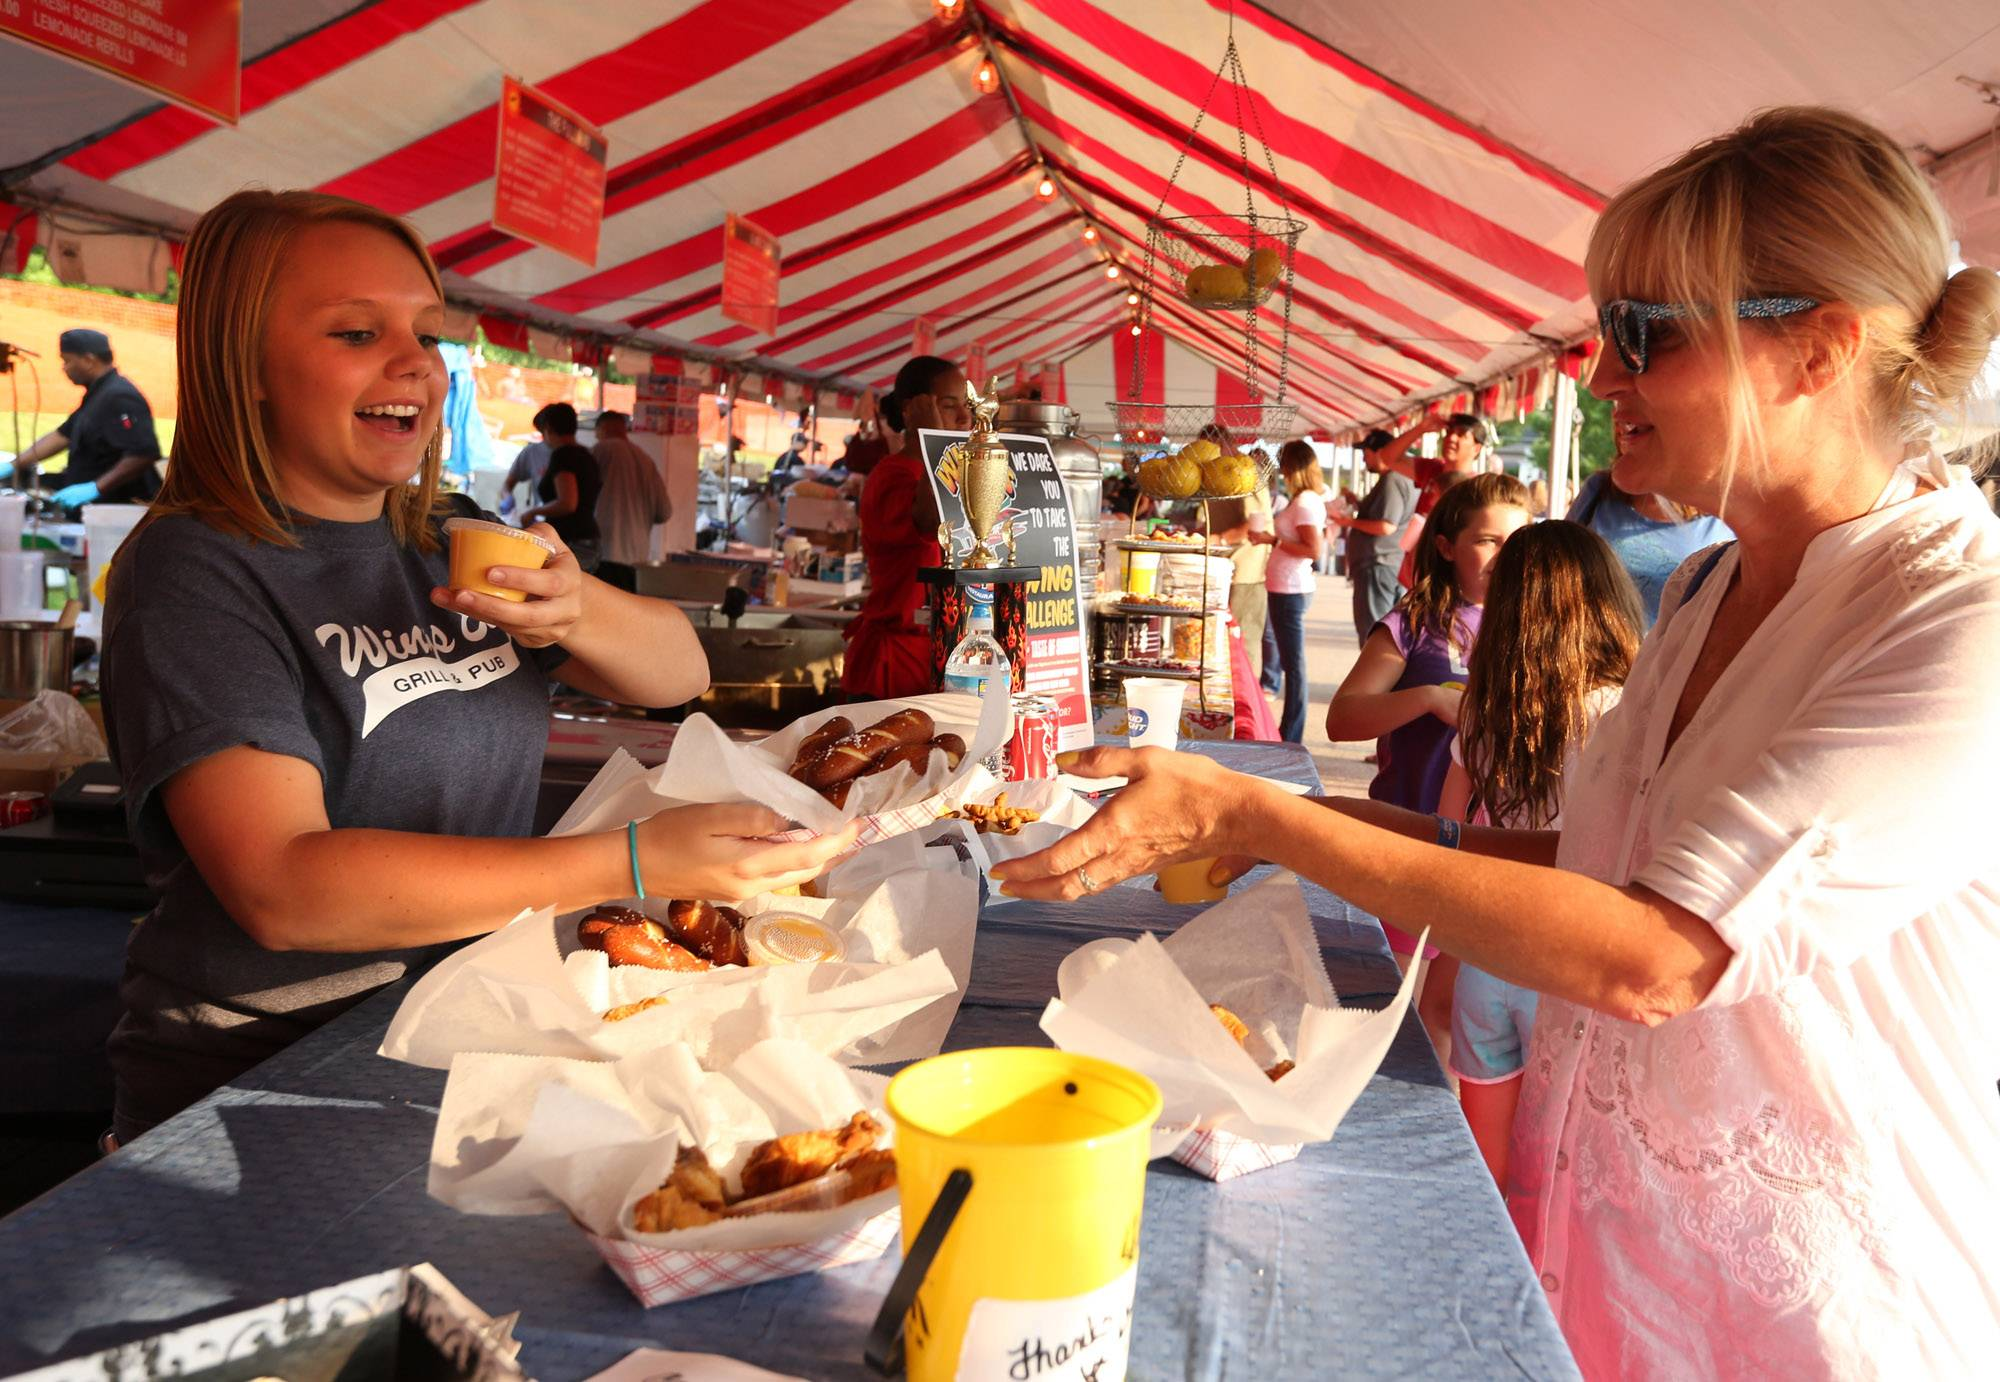 Daryl Gussarson, of Antioch, working the Wings Etc. of Antioch booth, serves pretzels to Laura Sokniewicz of Chicago, at the second day of the Antioch Taste of Summer on Friday.